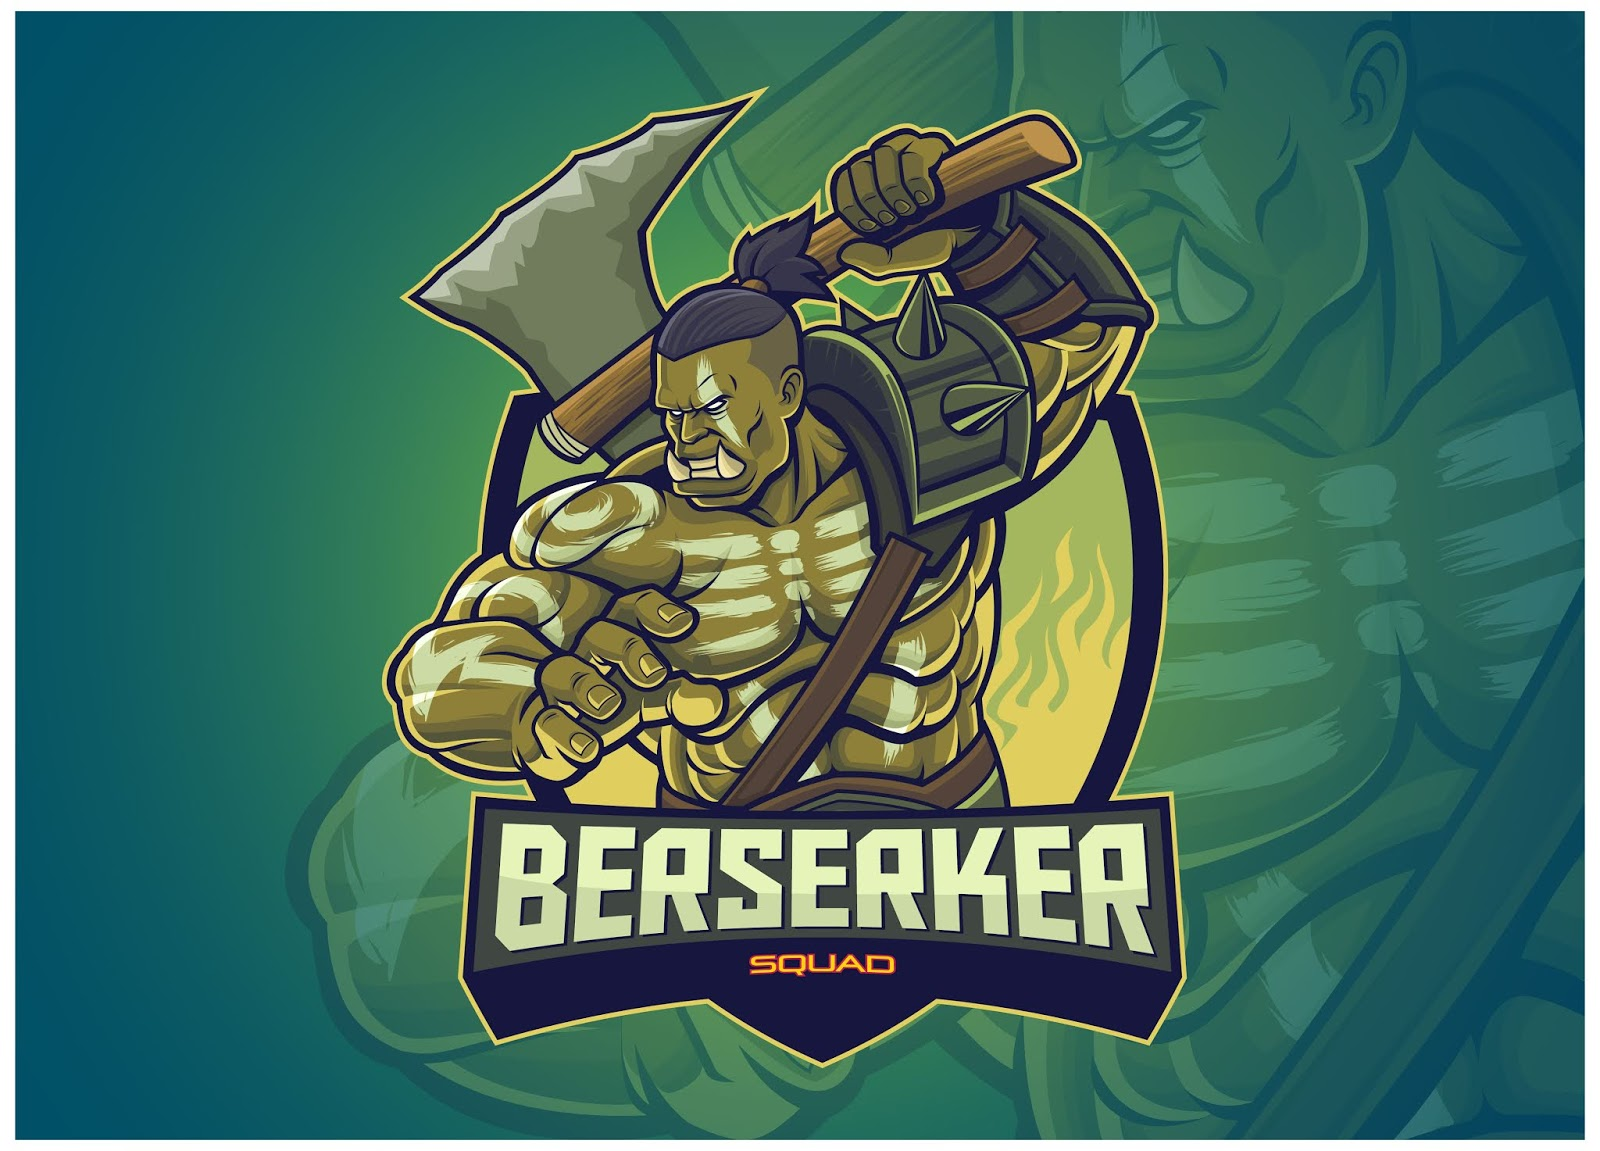 Orc Character Esports Logo Free Download Vector CDR, AI, EPS and PNG Formats